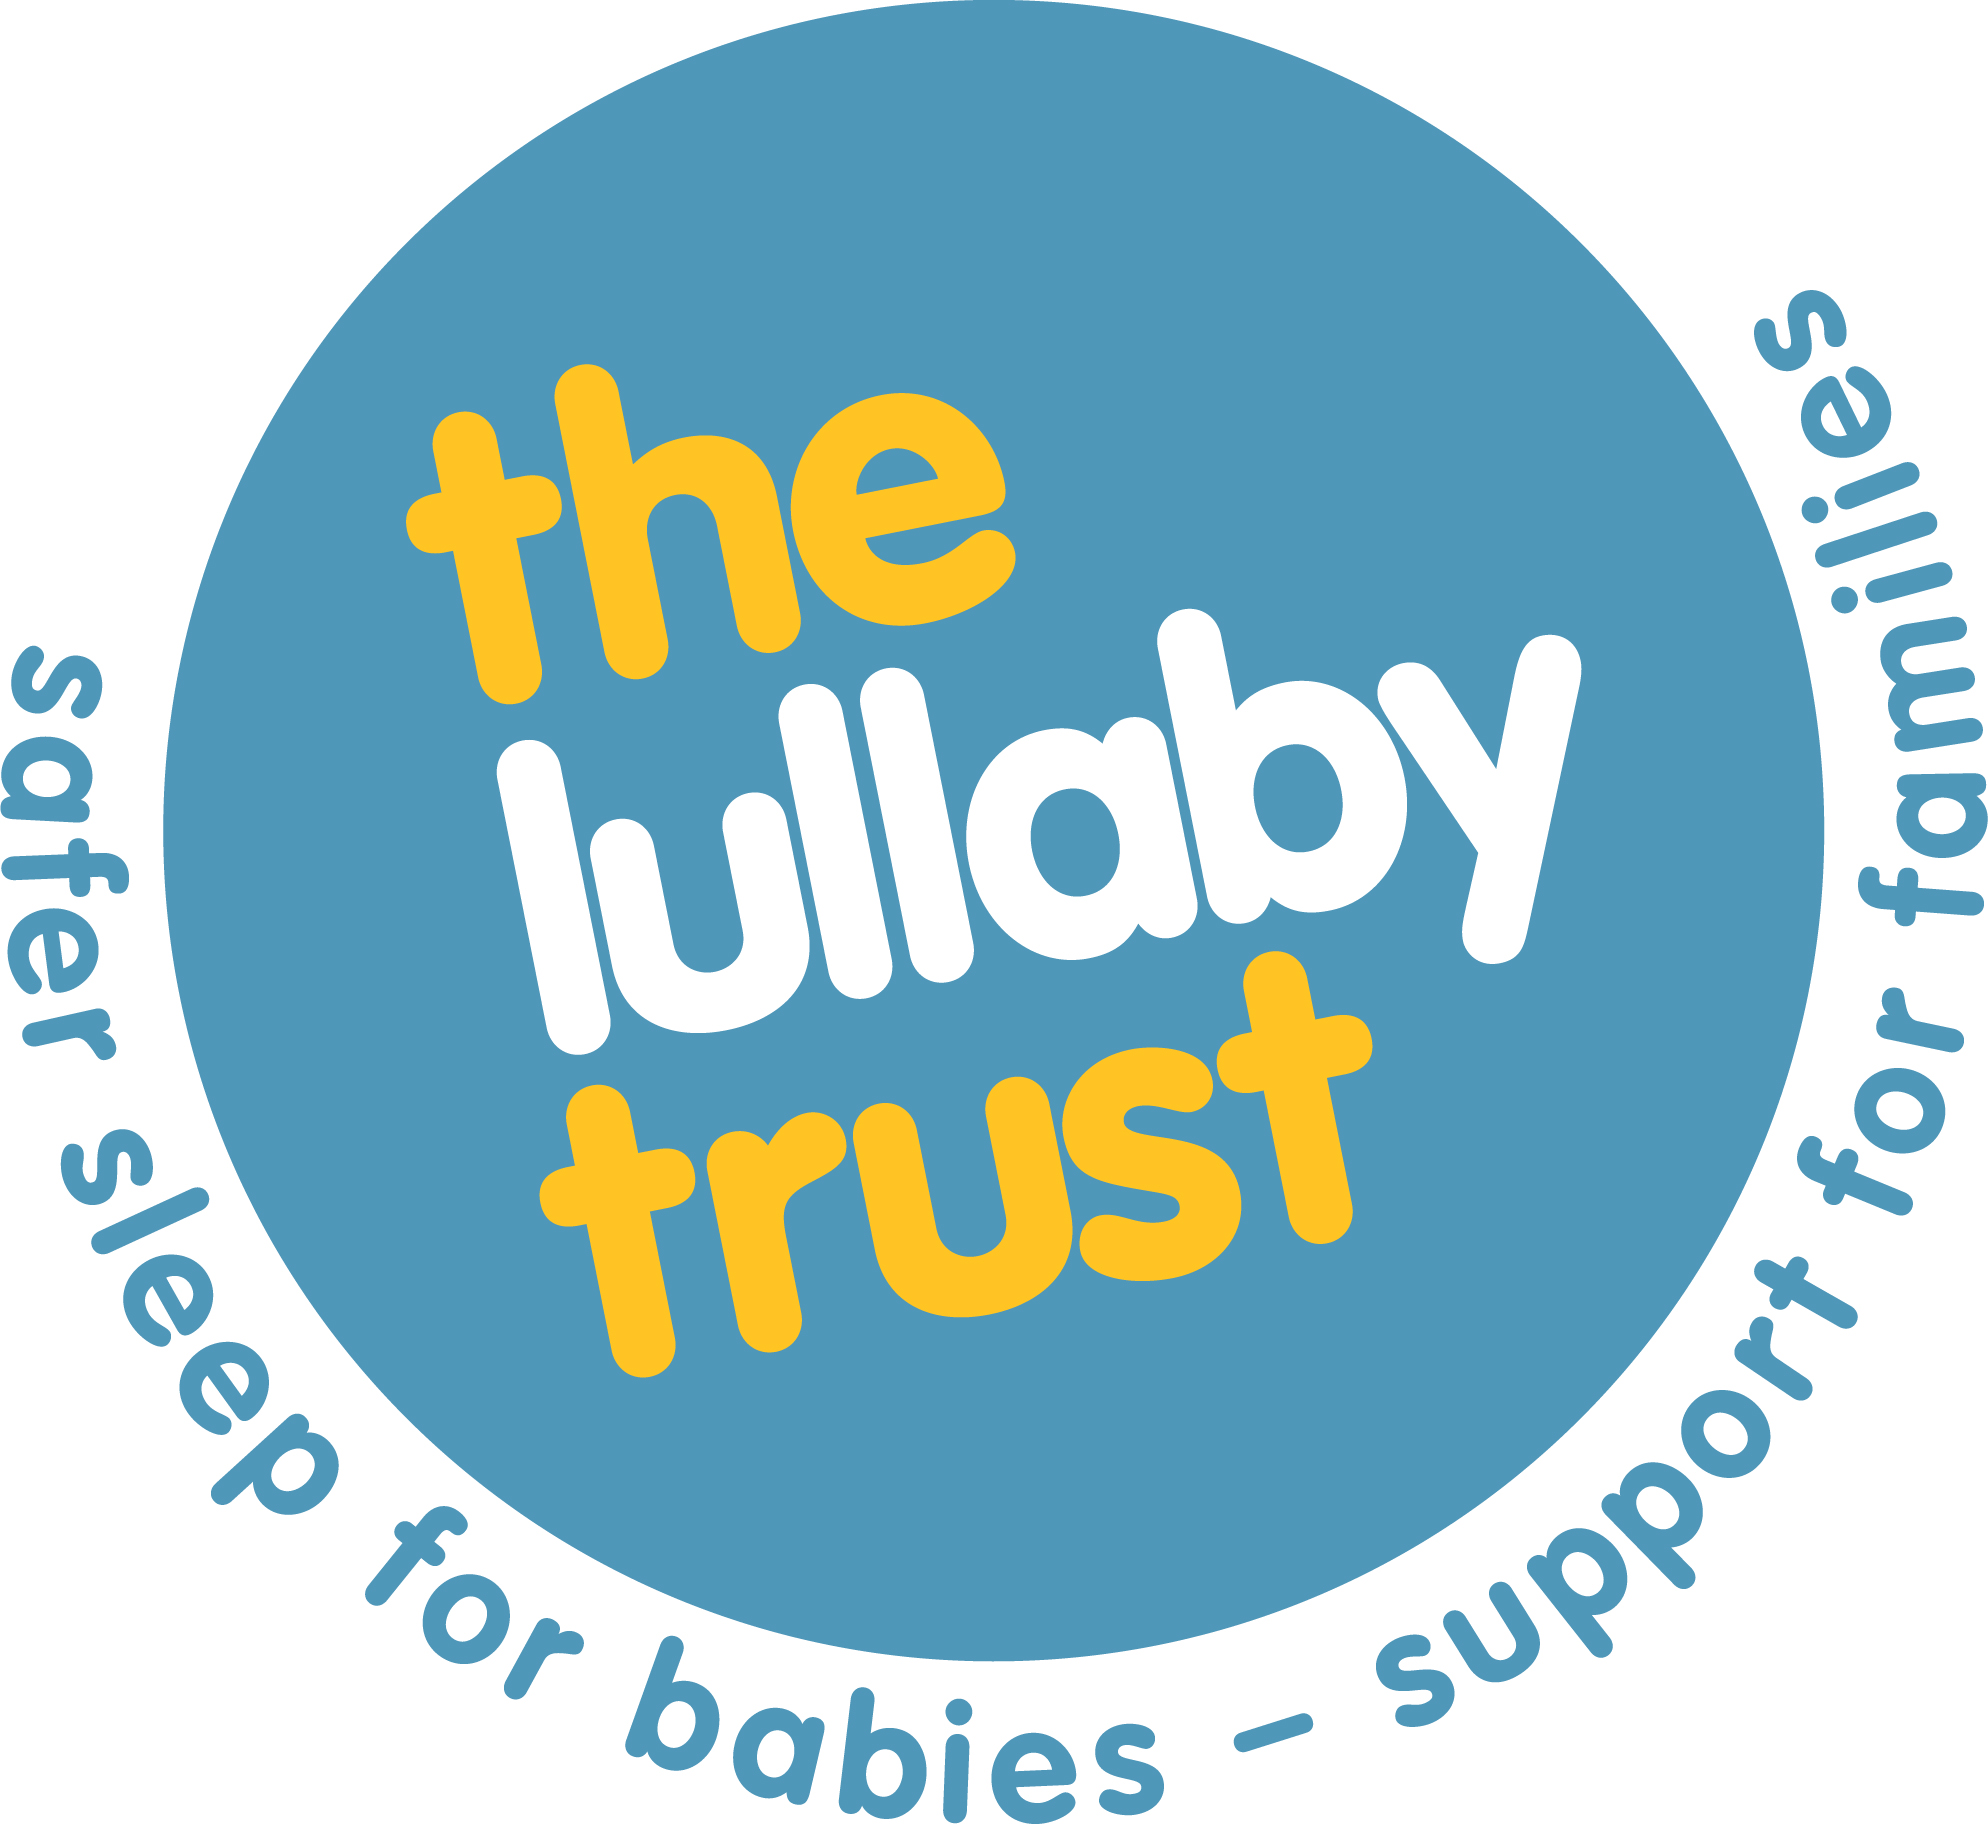 The Lullaby Trust is a charity which both raises awareness of sudden infant death syndrome (SIDS), provides expert advice on safer sleep for babies and offers emotional support for bereaved families. -